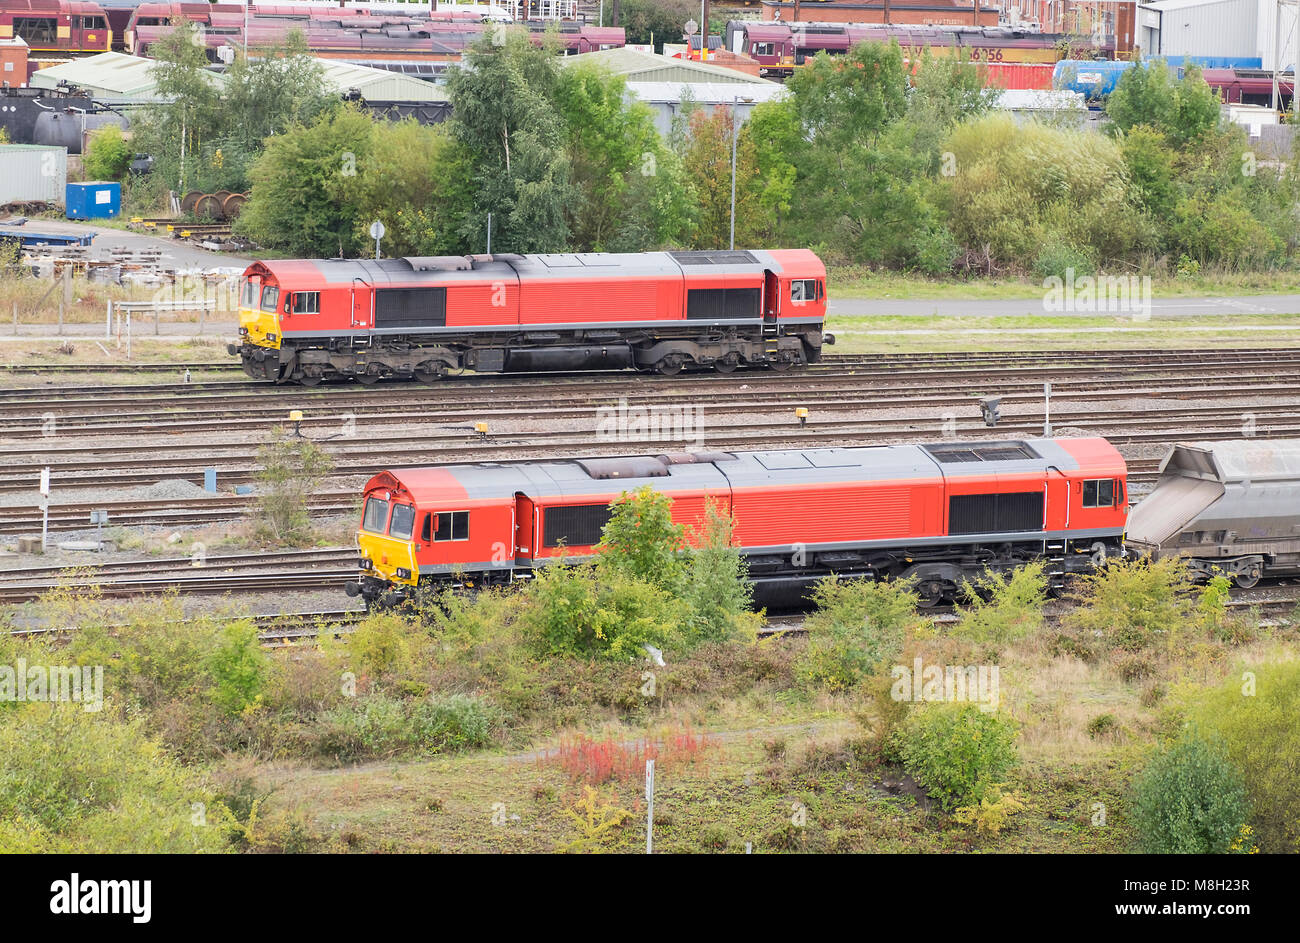 Two red locomotives at Toton Sidings, Nottinghamshire, UK - Stock Image